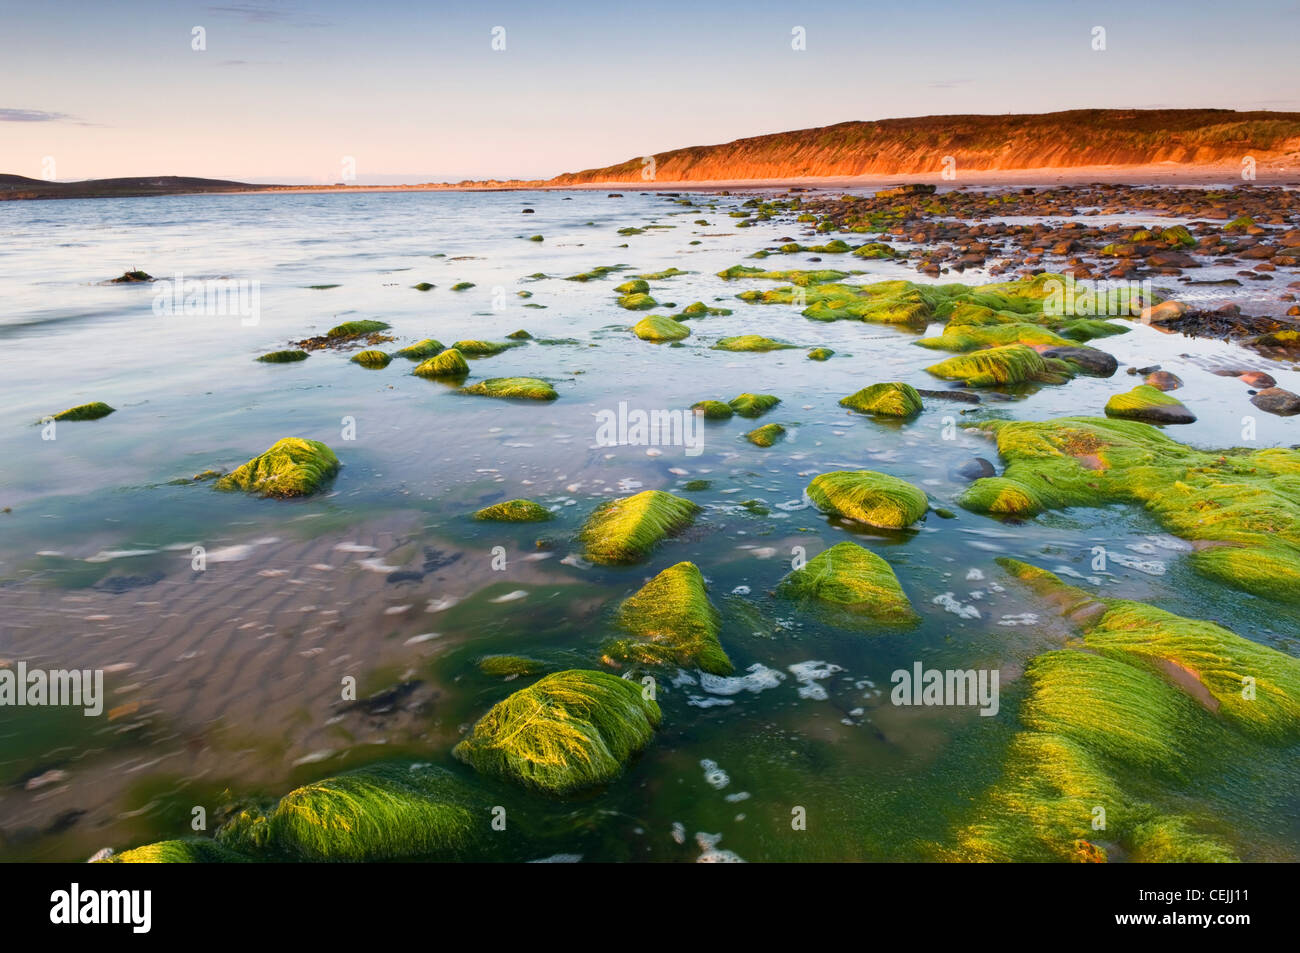 The Sands of Mussetter at sunset, on the island of Eday, Orkney Islands, Scotland. Stock Photo